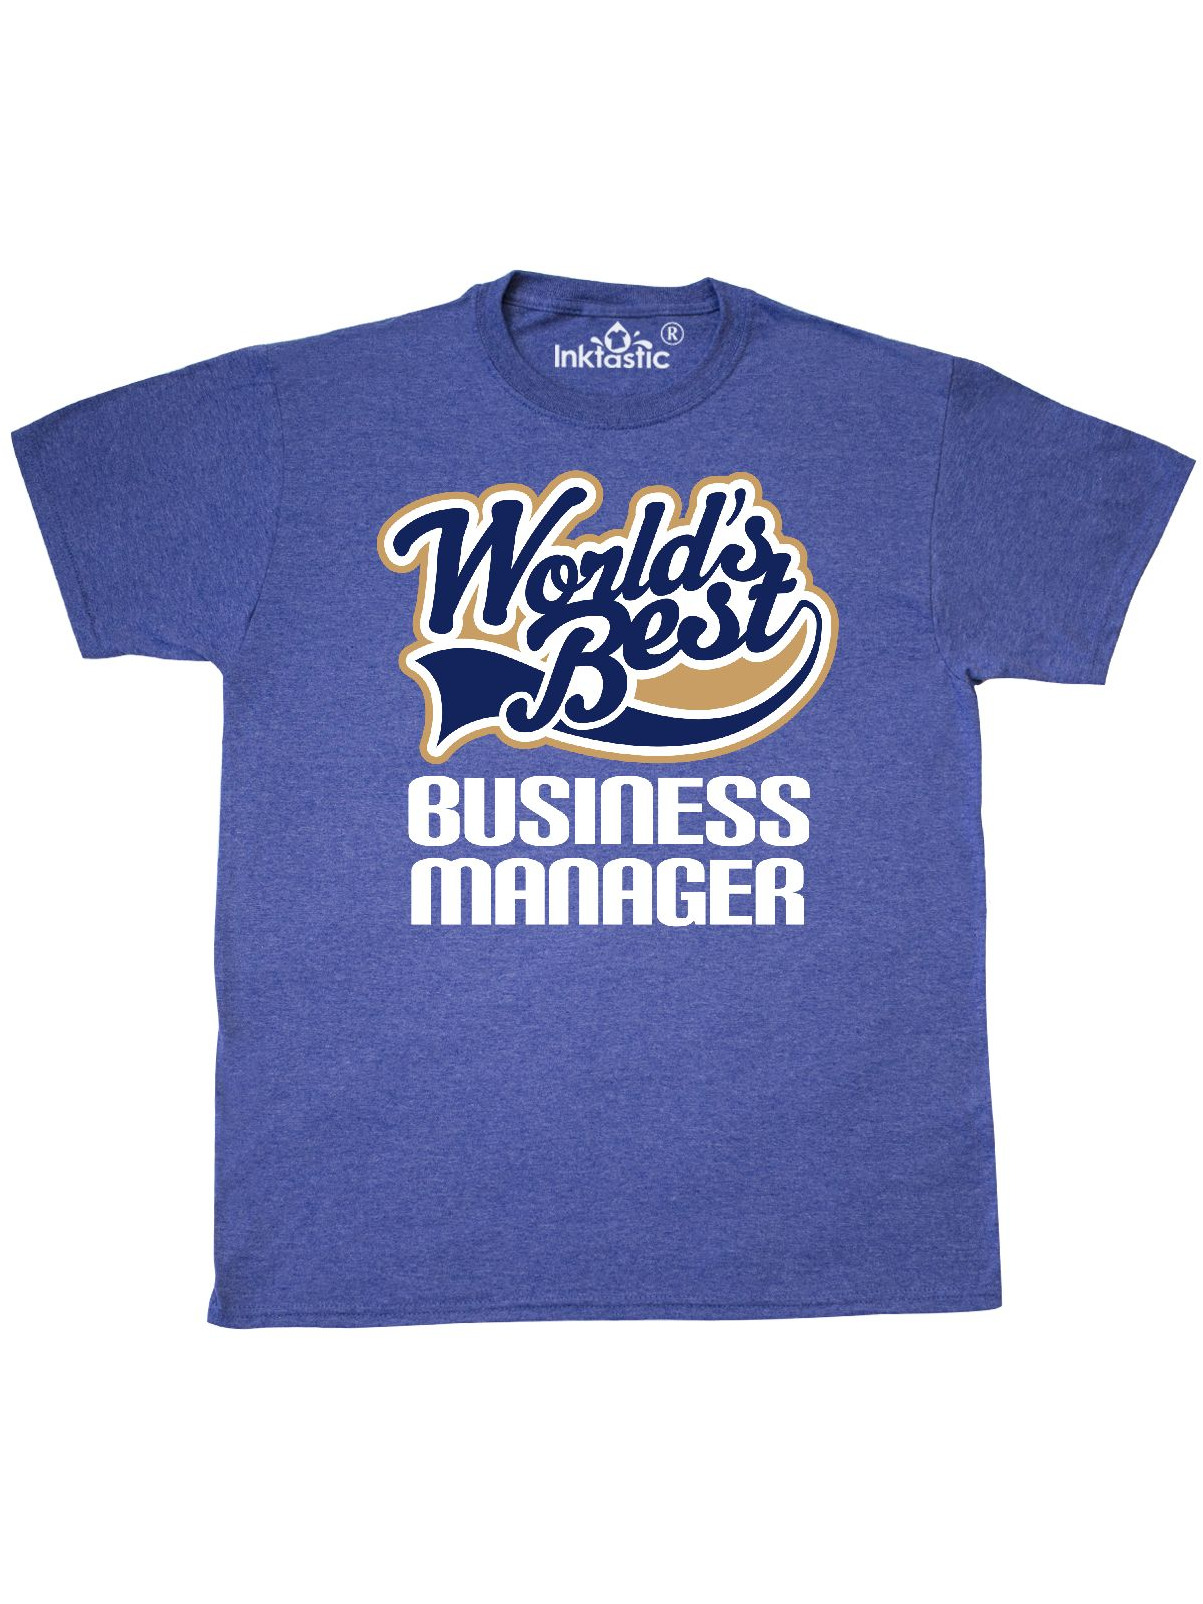 faba2b8bc INKtastic - Worlds Best Business Manager T-Shirt - Walmart.com